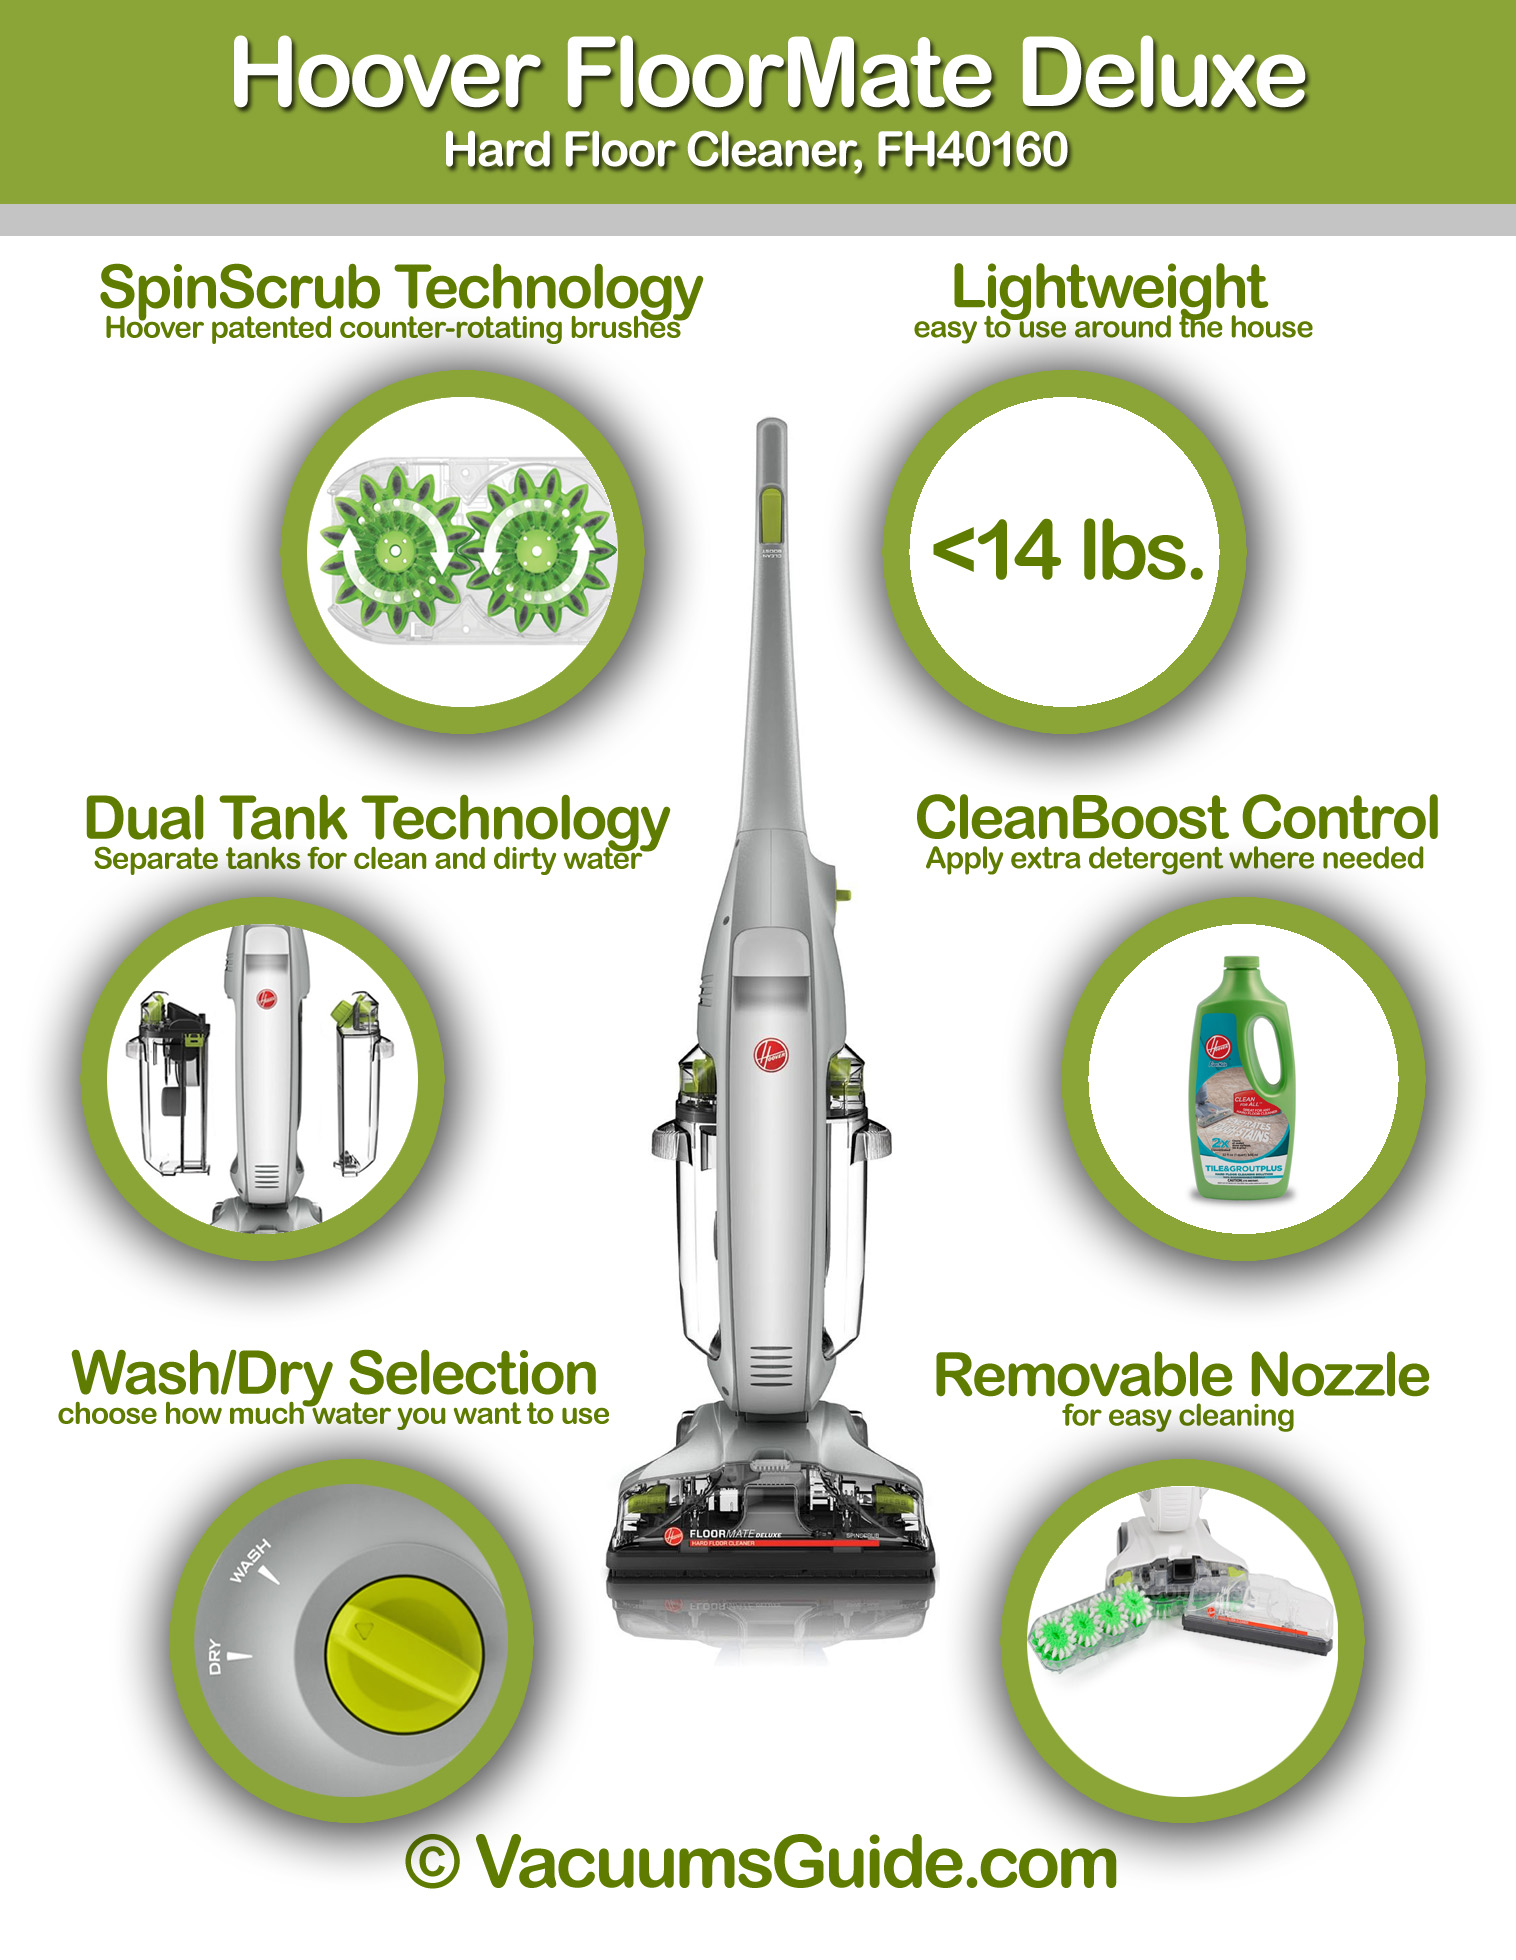 Hoover floormate deluxe the review of a hard floor cleaner product infographic hoover floormate deluxe features dailygadgetfo Images